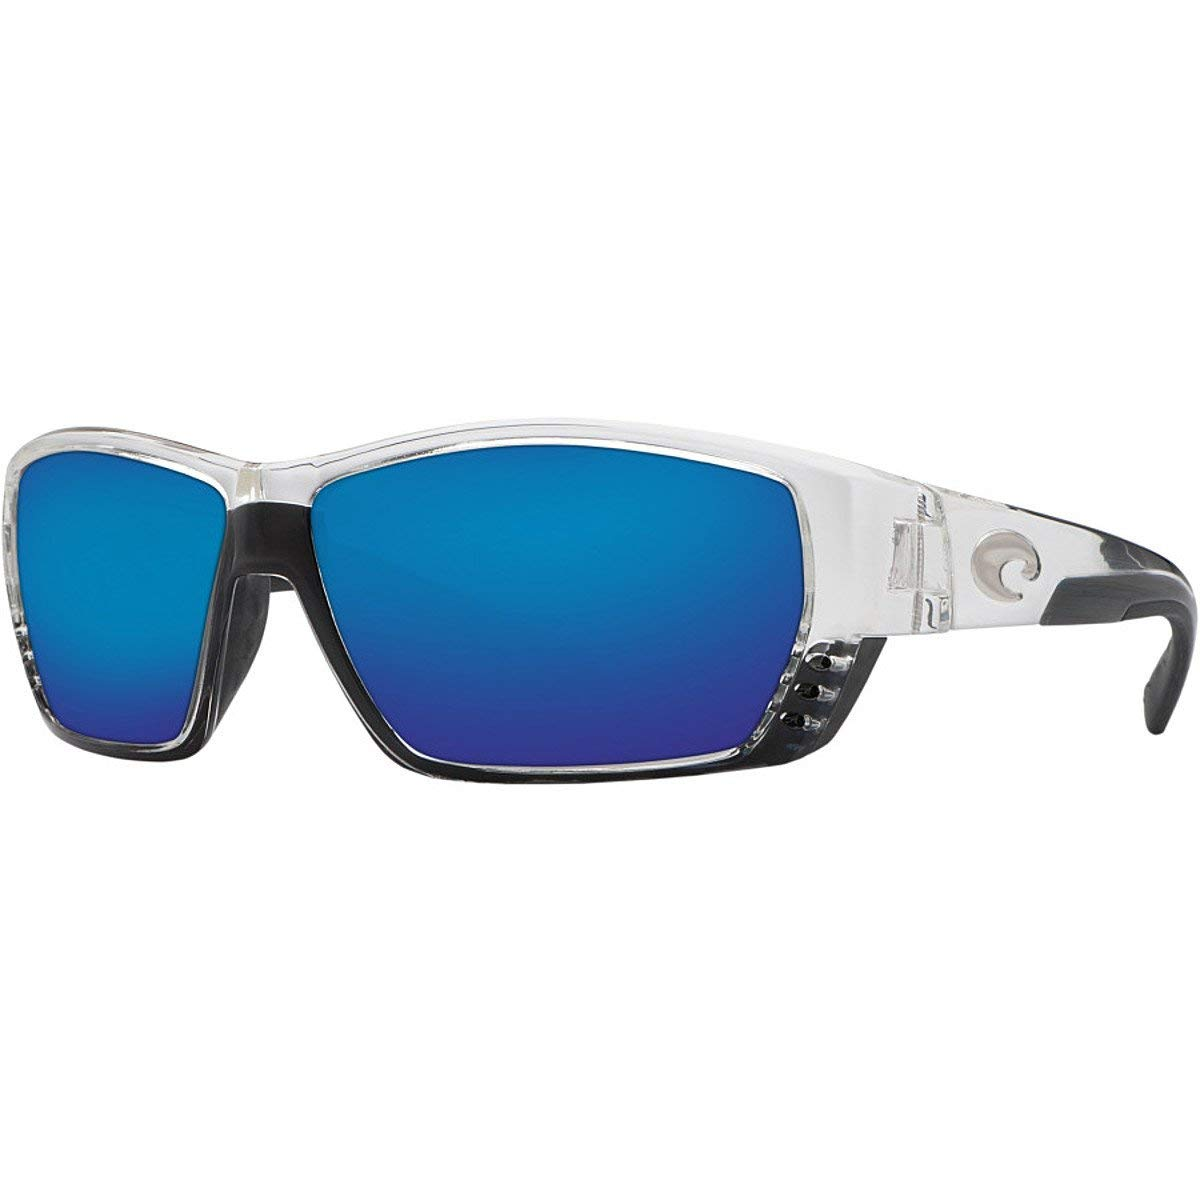 159eca54dfb0a Costa Del Mar Tuna Alley Sunglasses - Crystal Frame - Blue Mirror 580G lens